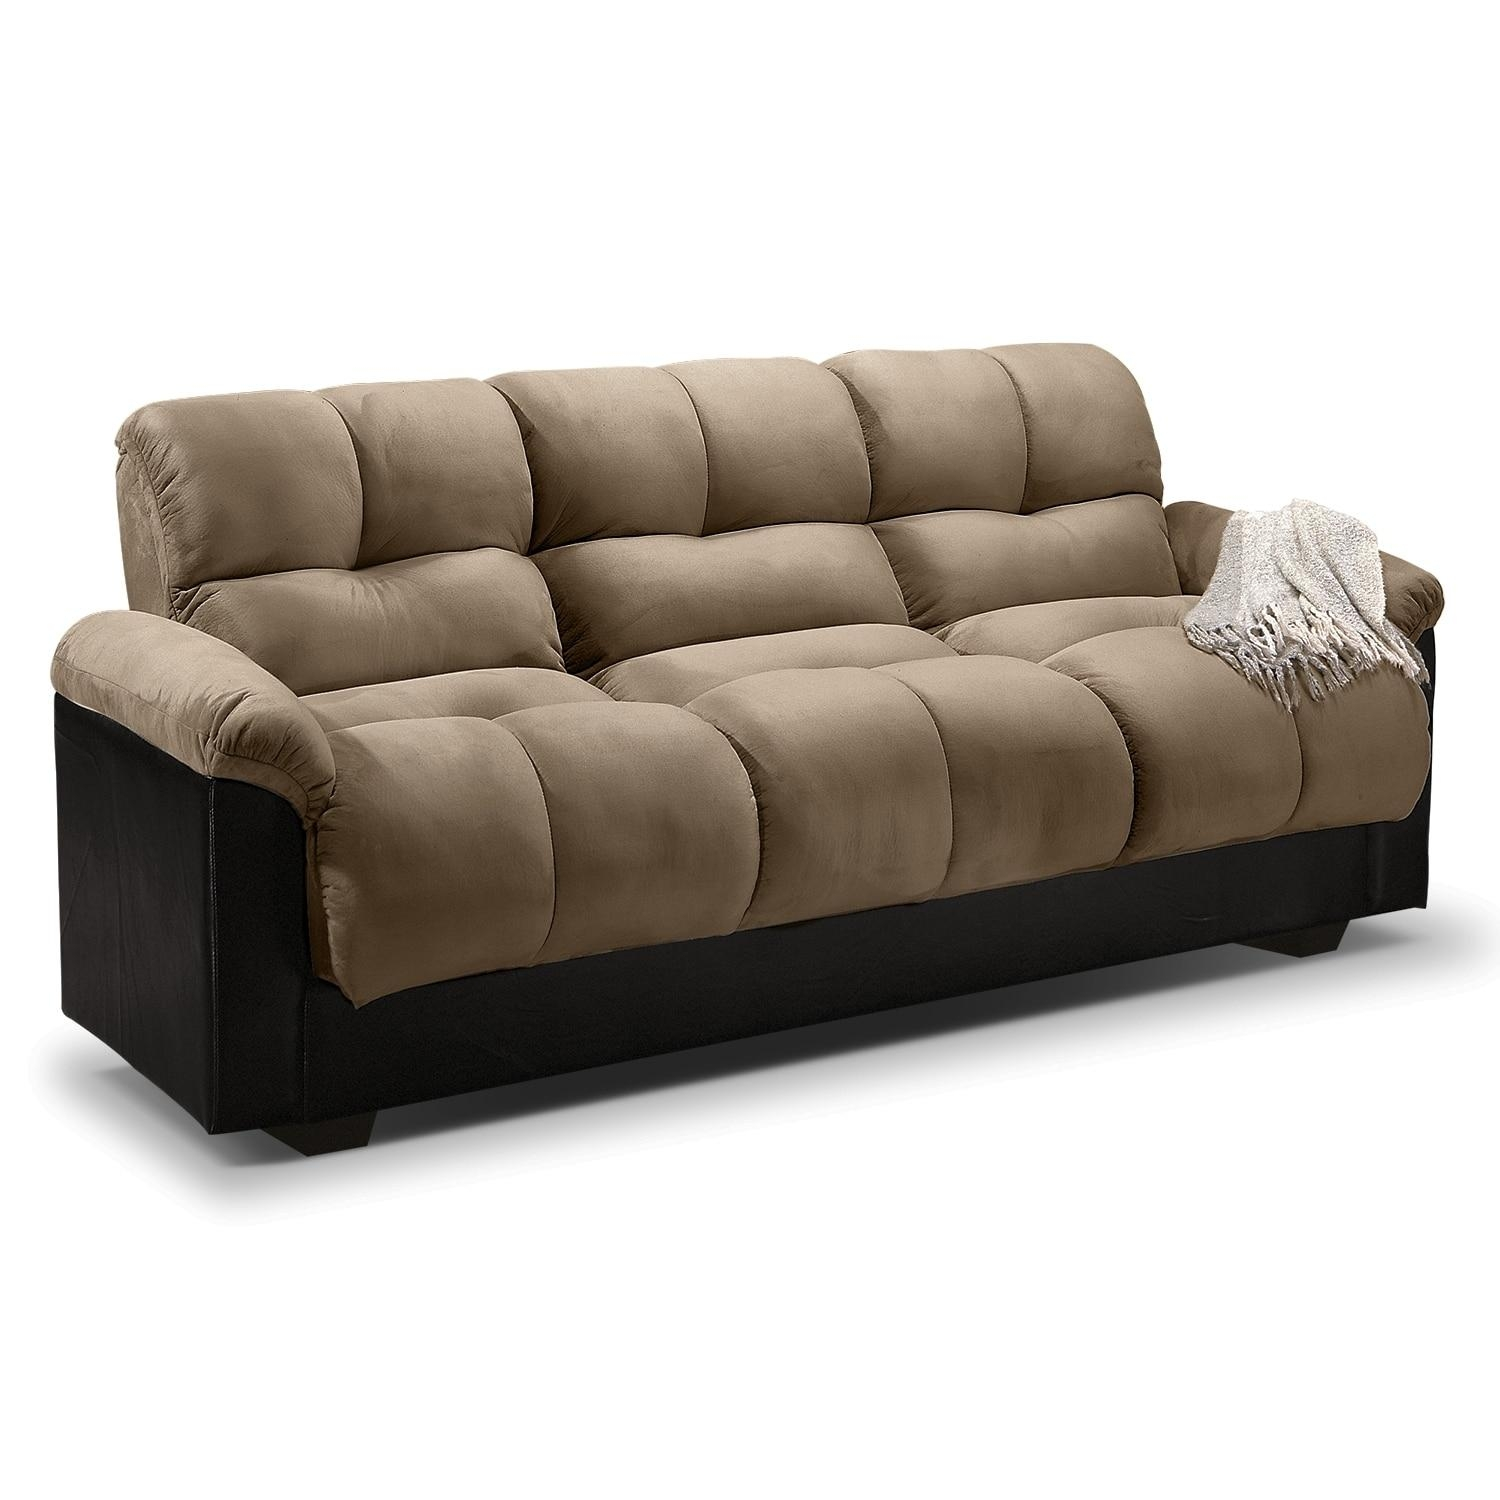 Featured Image of Futon Couch Beds